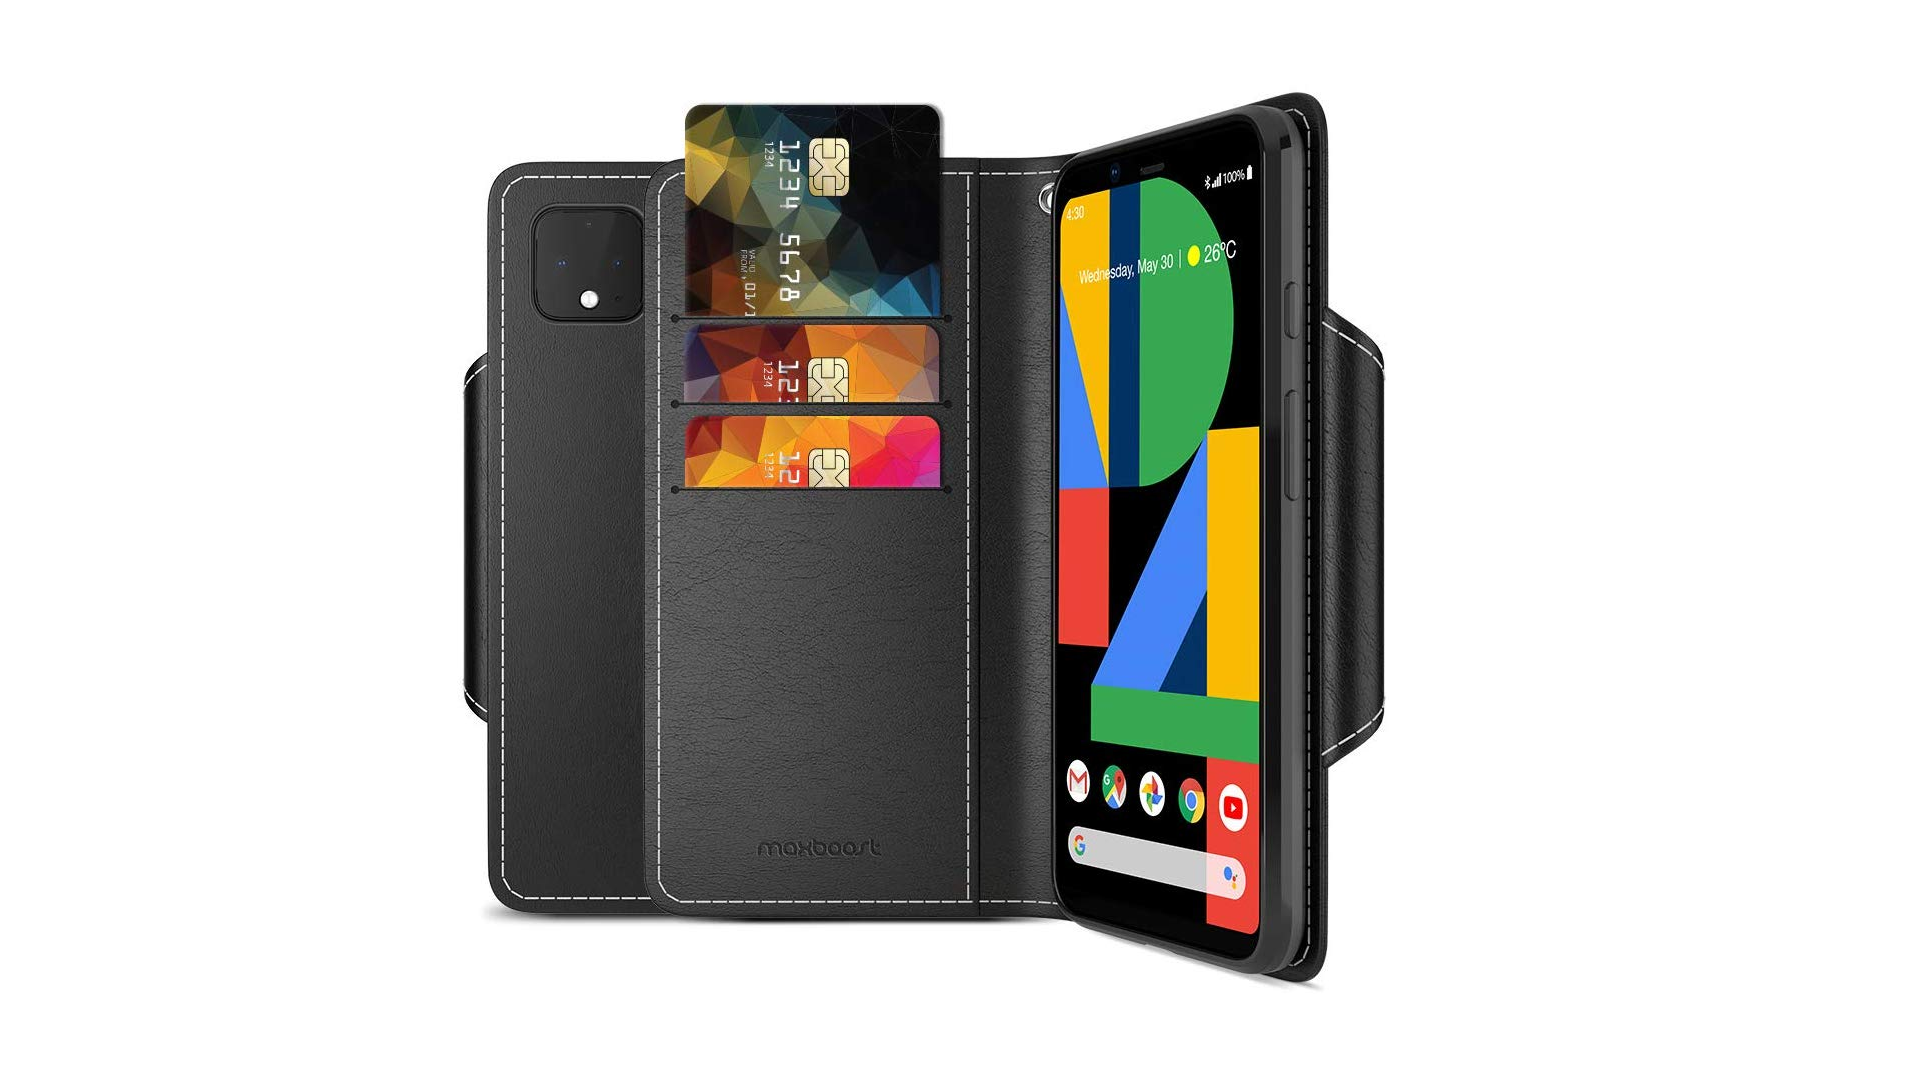 A Pixel 4 in a Maxboost wallet case.